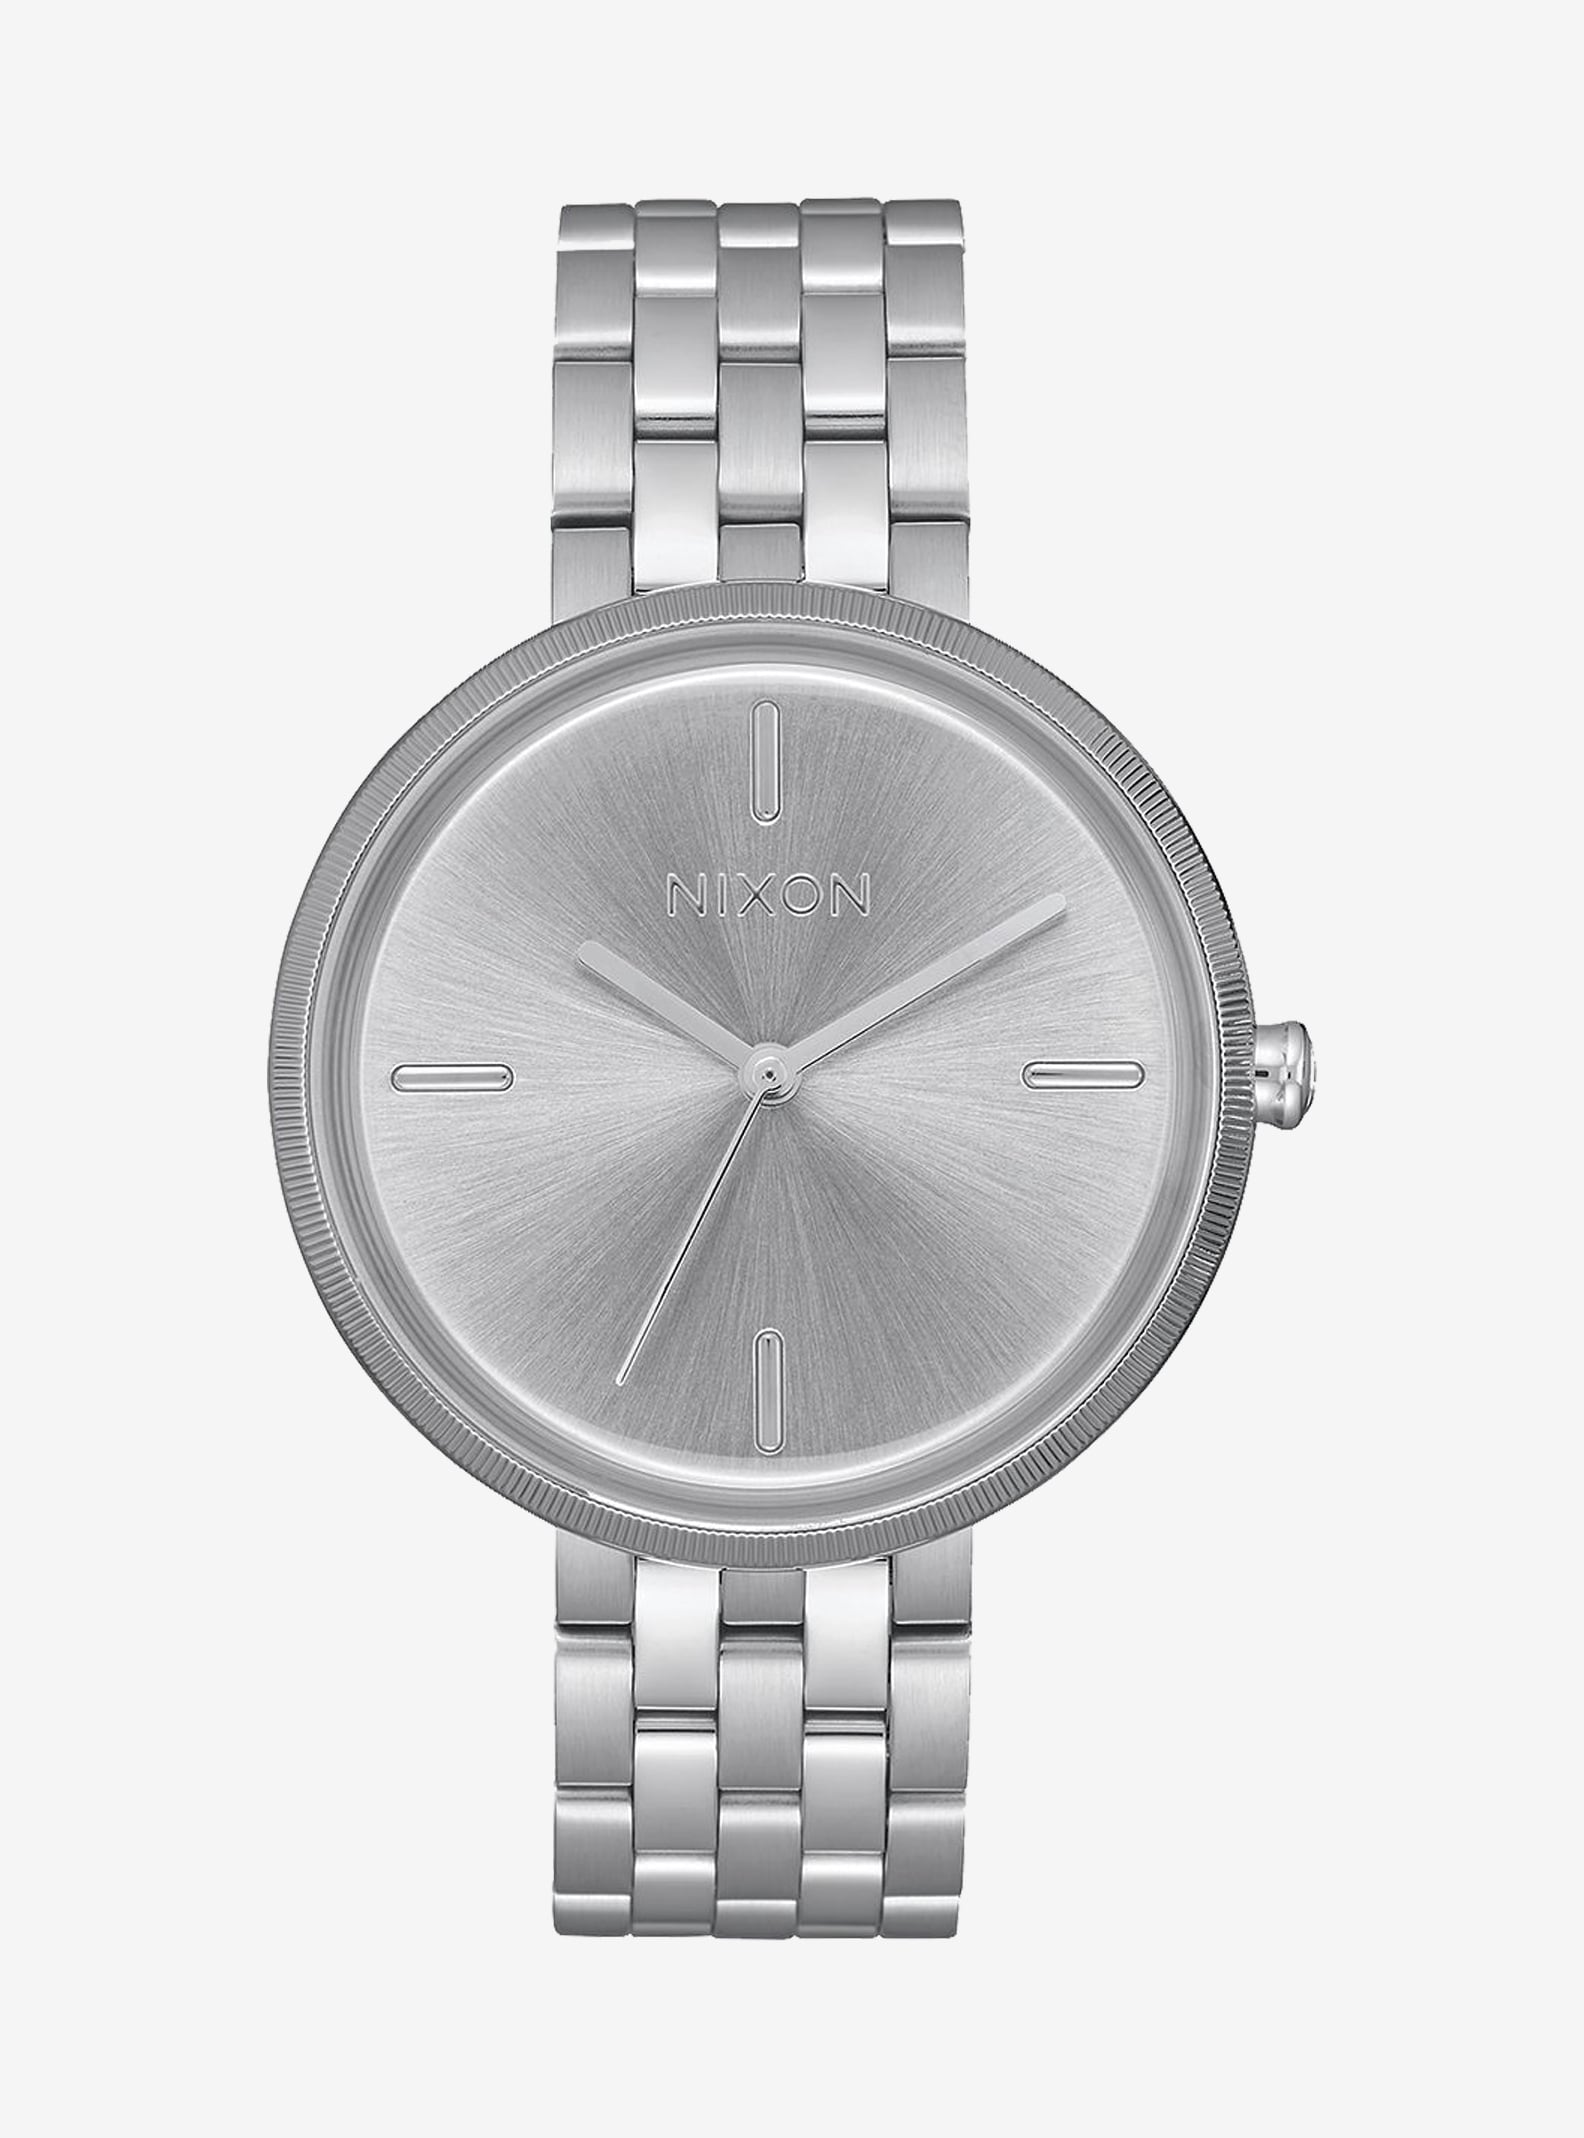 Nixon Vix Watch shown in Silver